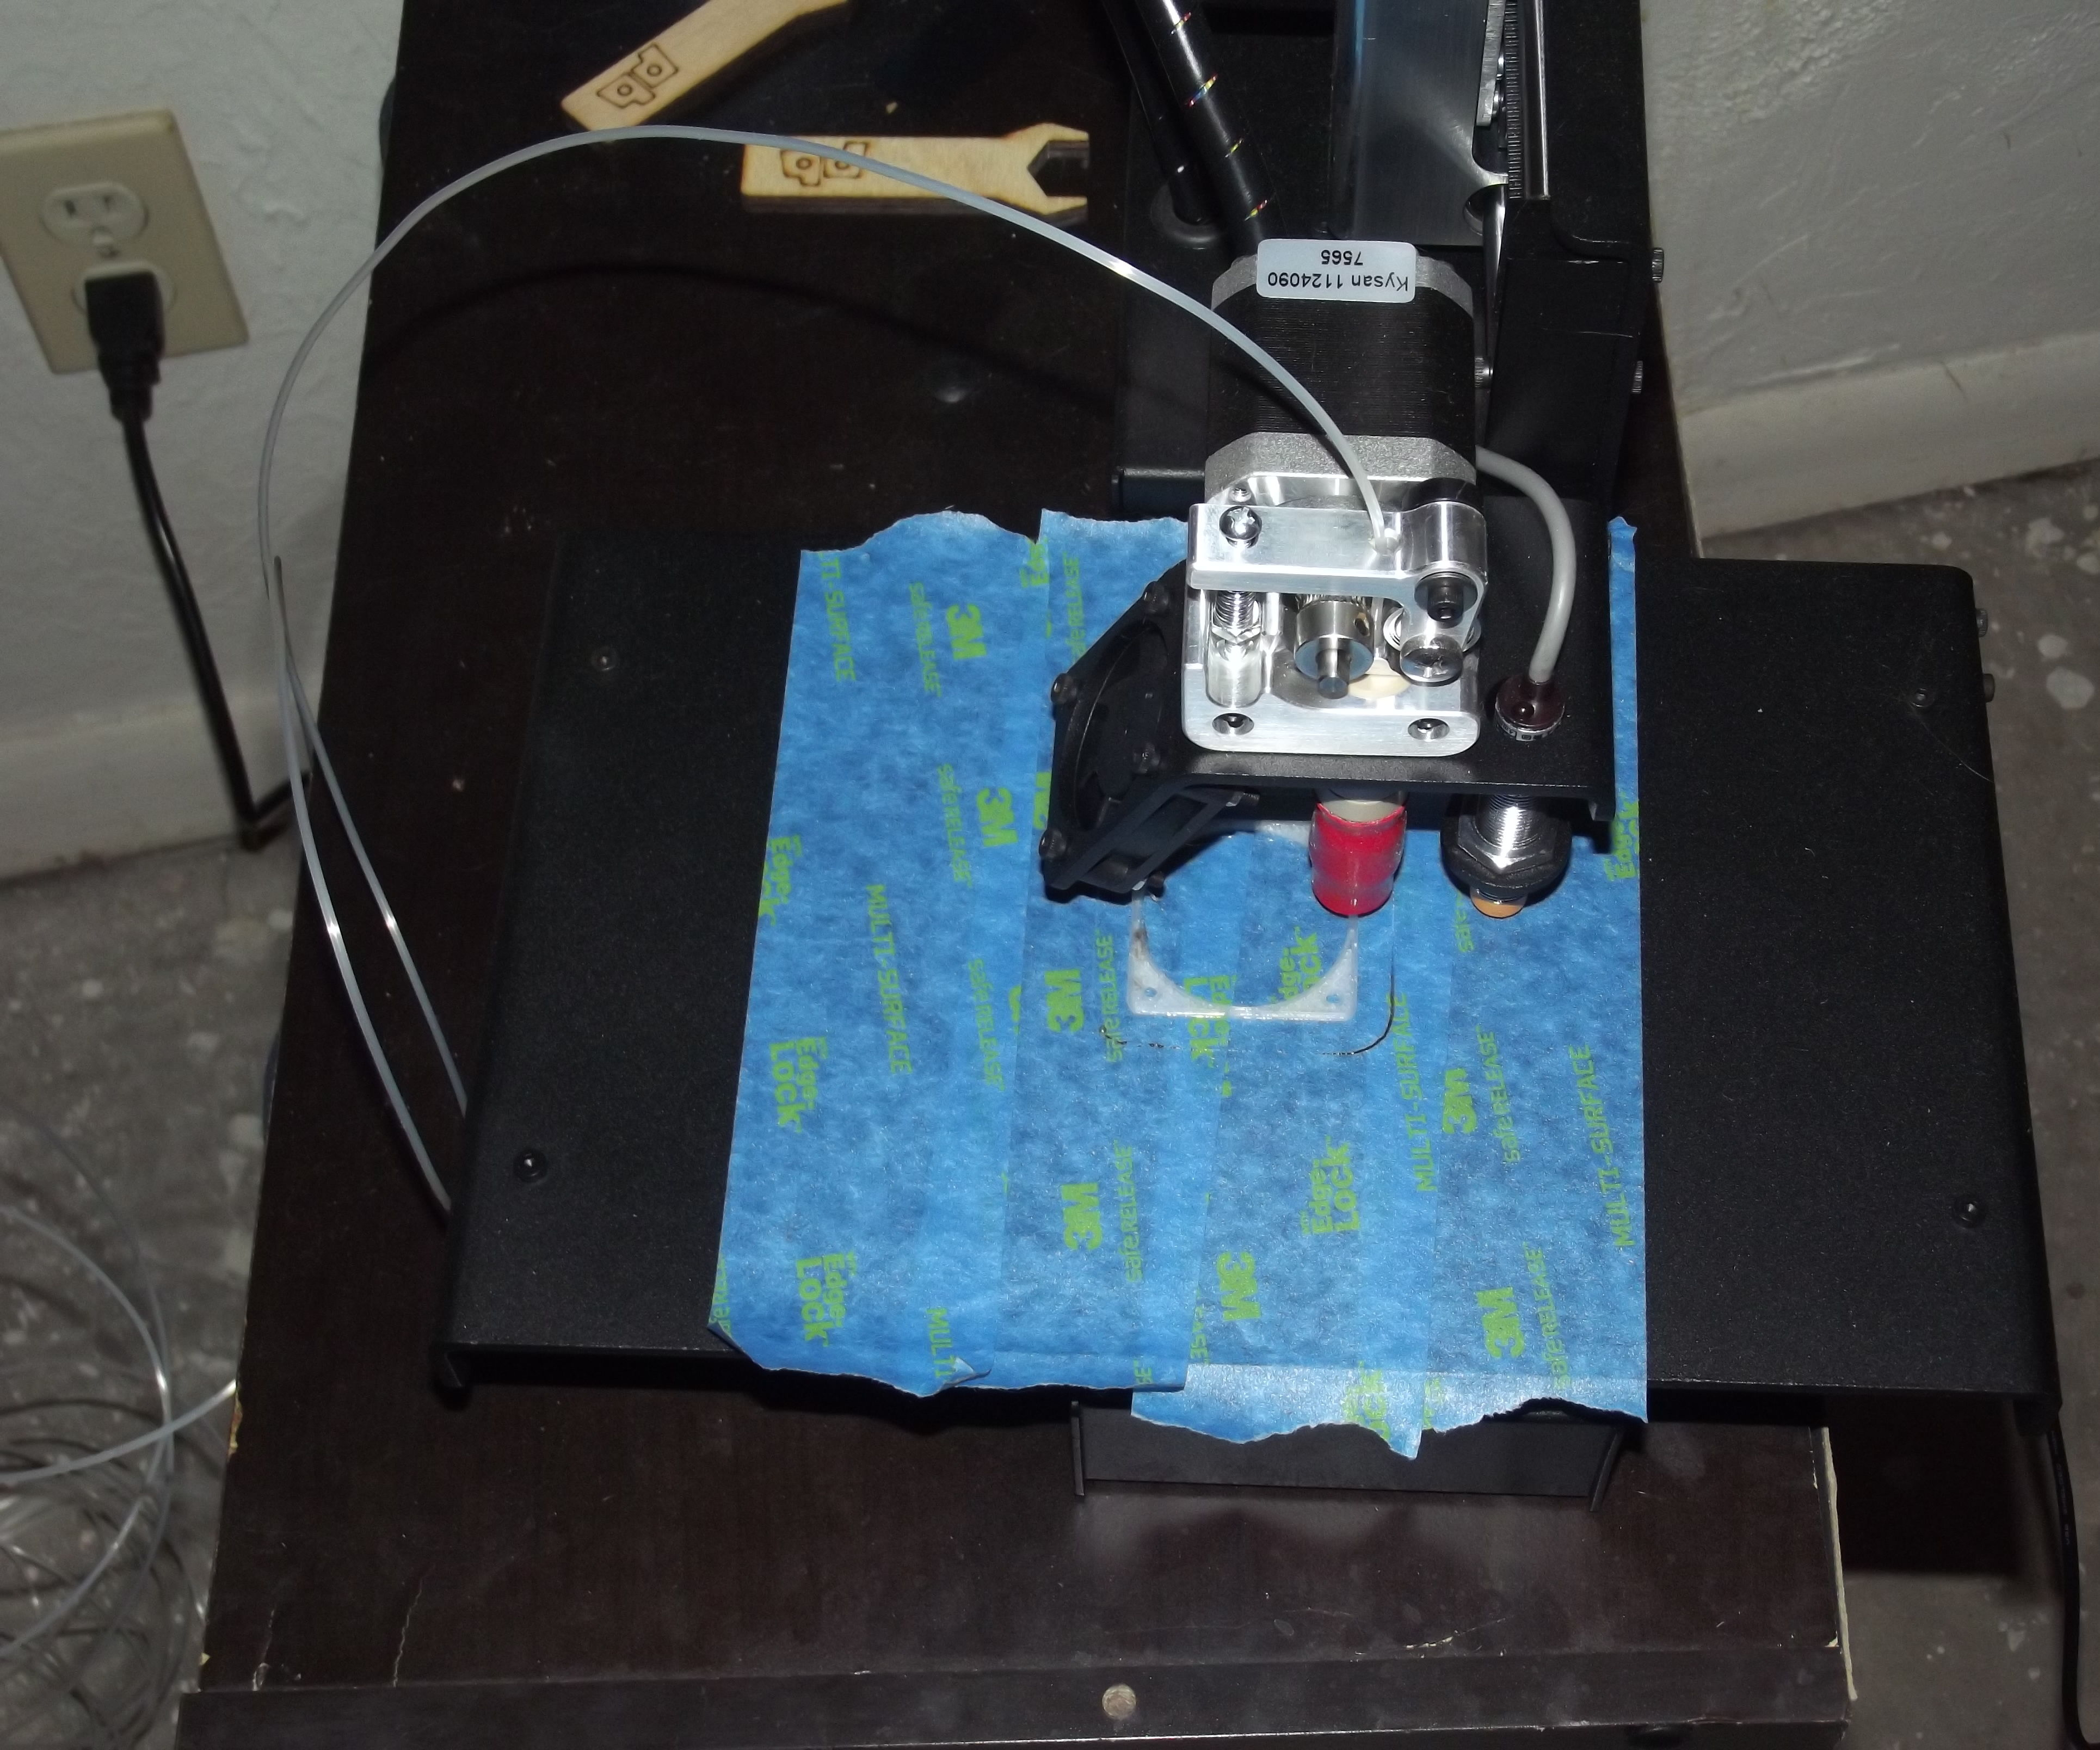 Listening to G-Code and The PrintrBot Simple (1403)